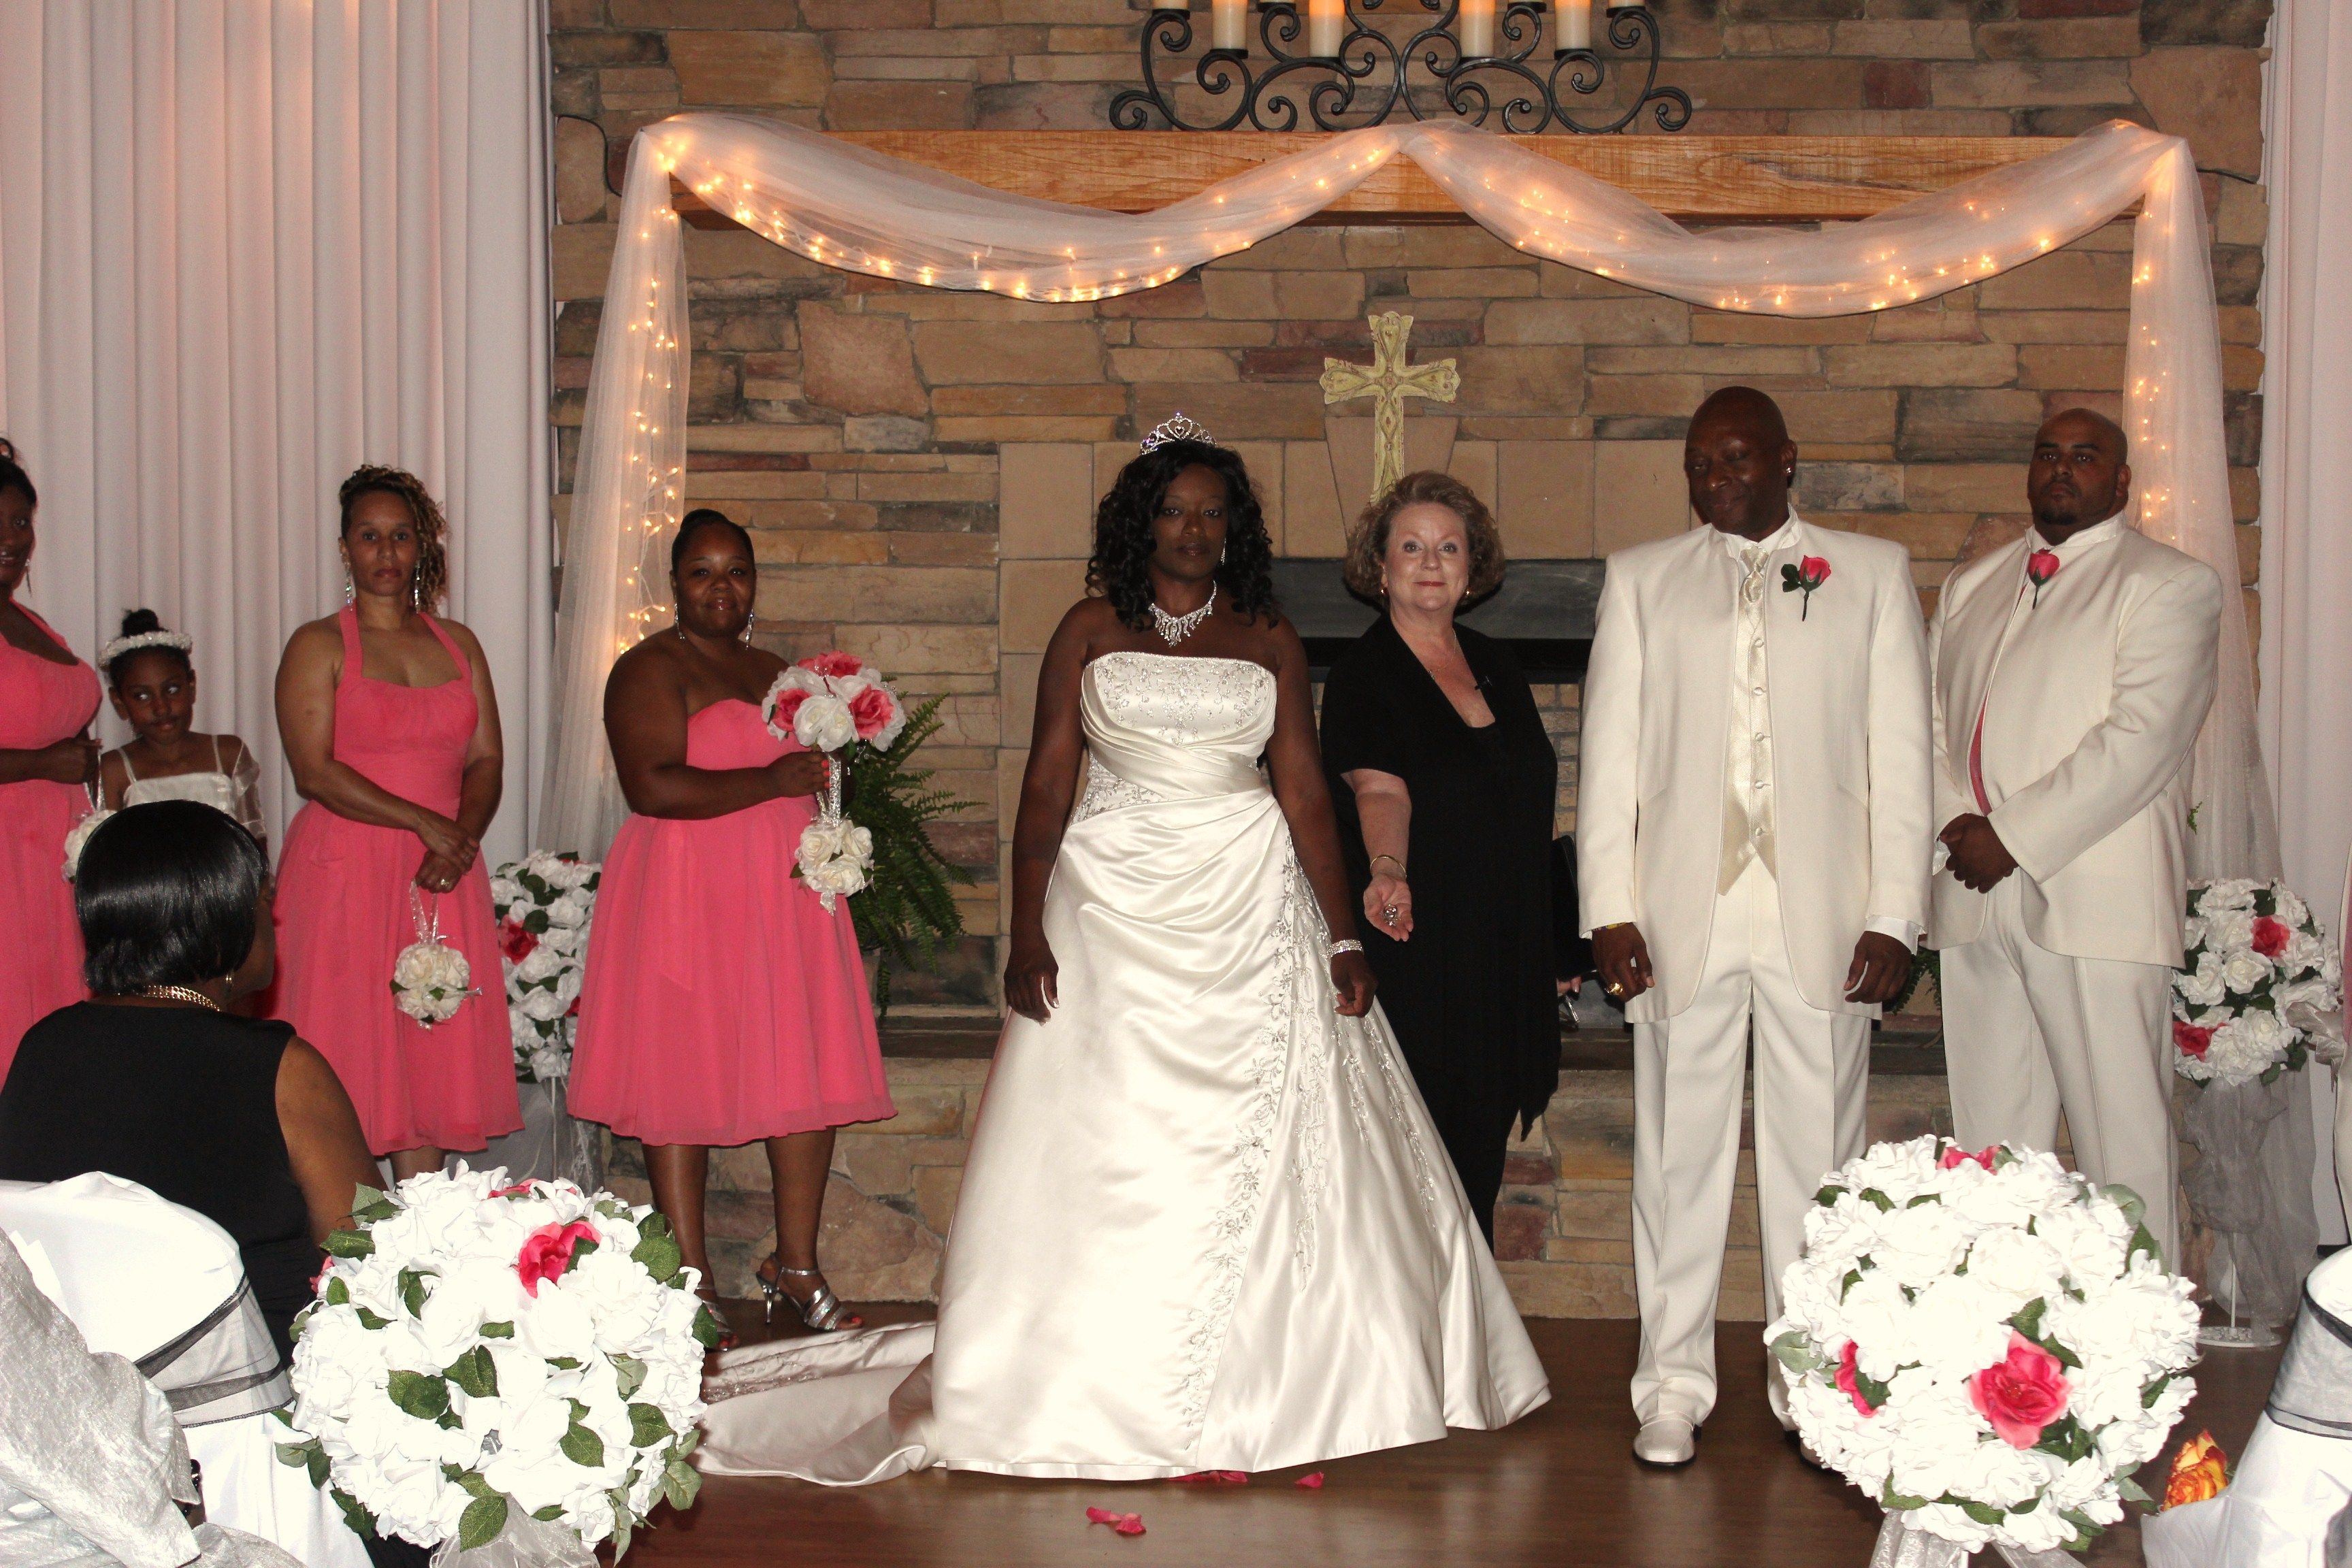 Pin By Paparazzi Jewlery On Education To Become A Wedding And Event Planner Wedding Officiant Wedding Ceremony Wedding